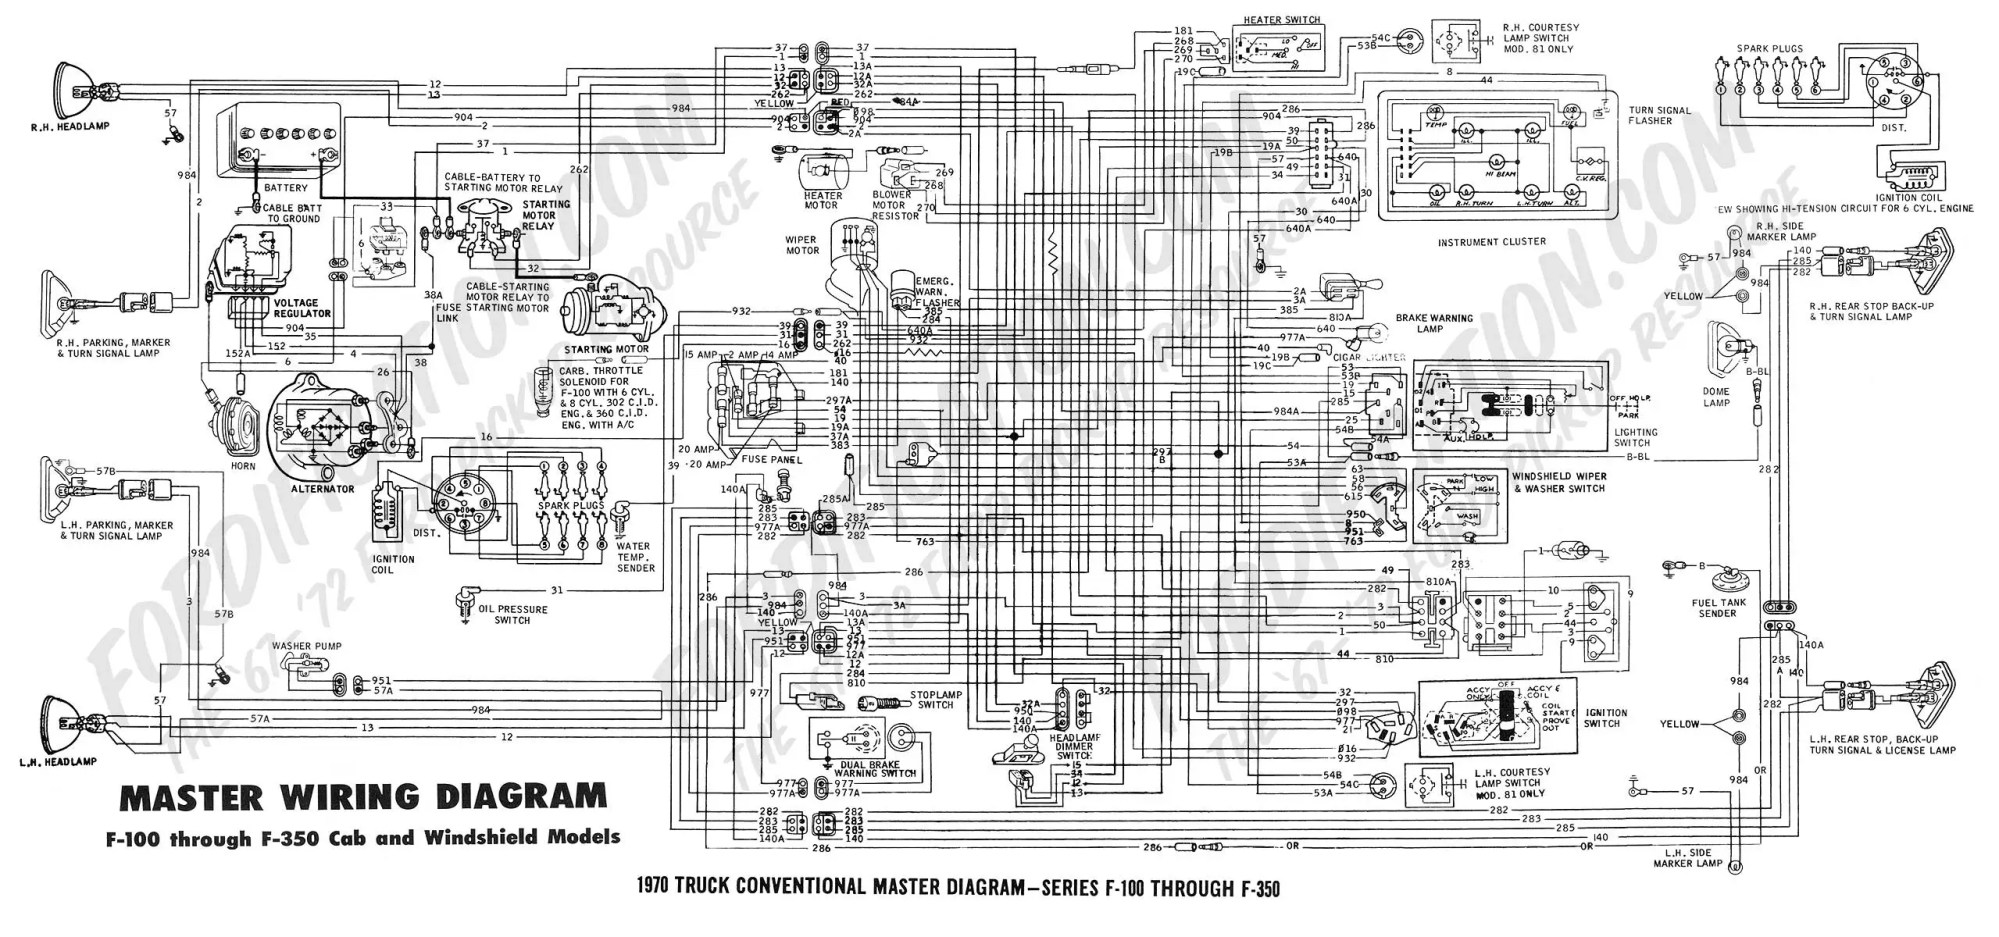 hight resolution of l8000 ford truck wiring wiring diagram third levelford l8000 truck wiring diagrams wiring diagrams schema international